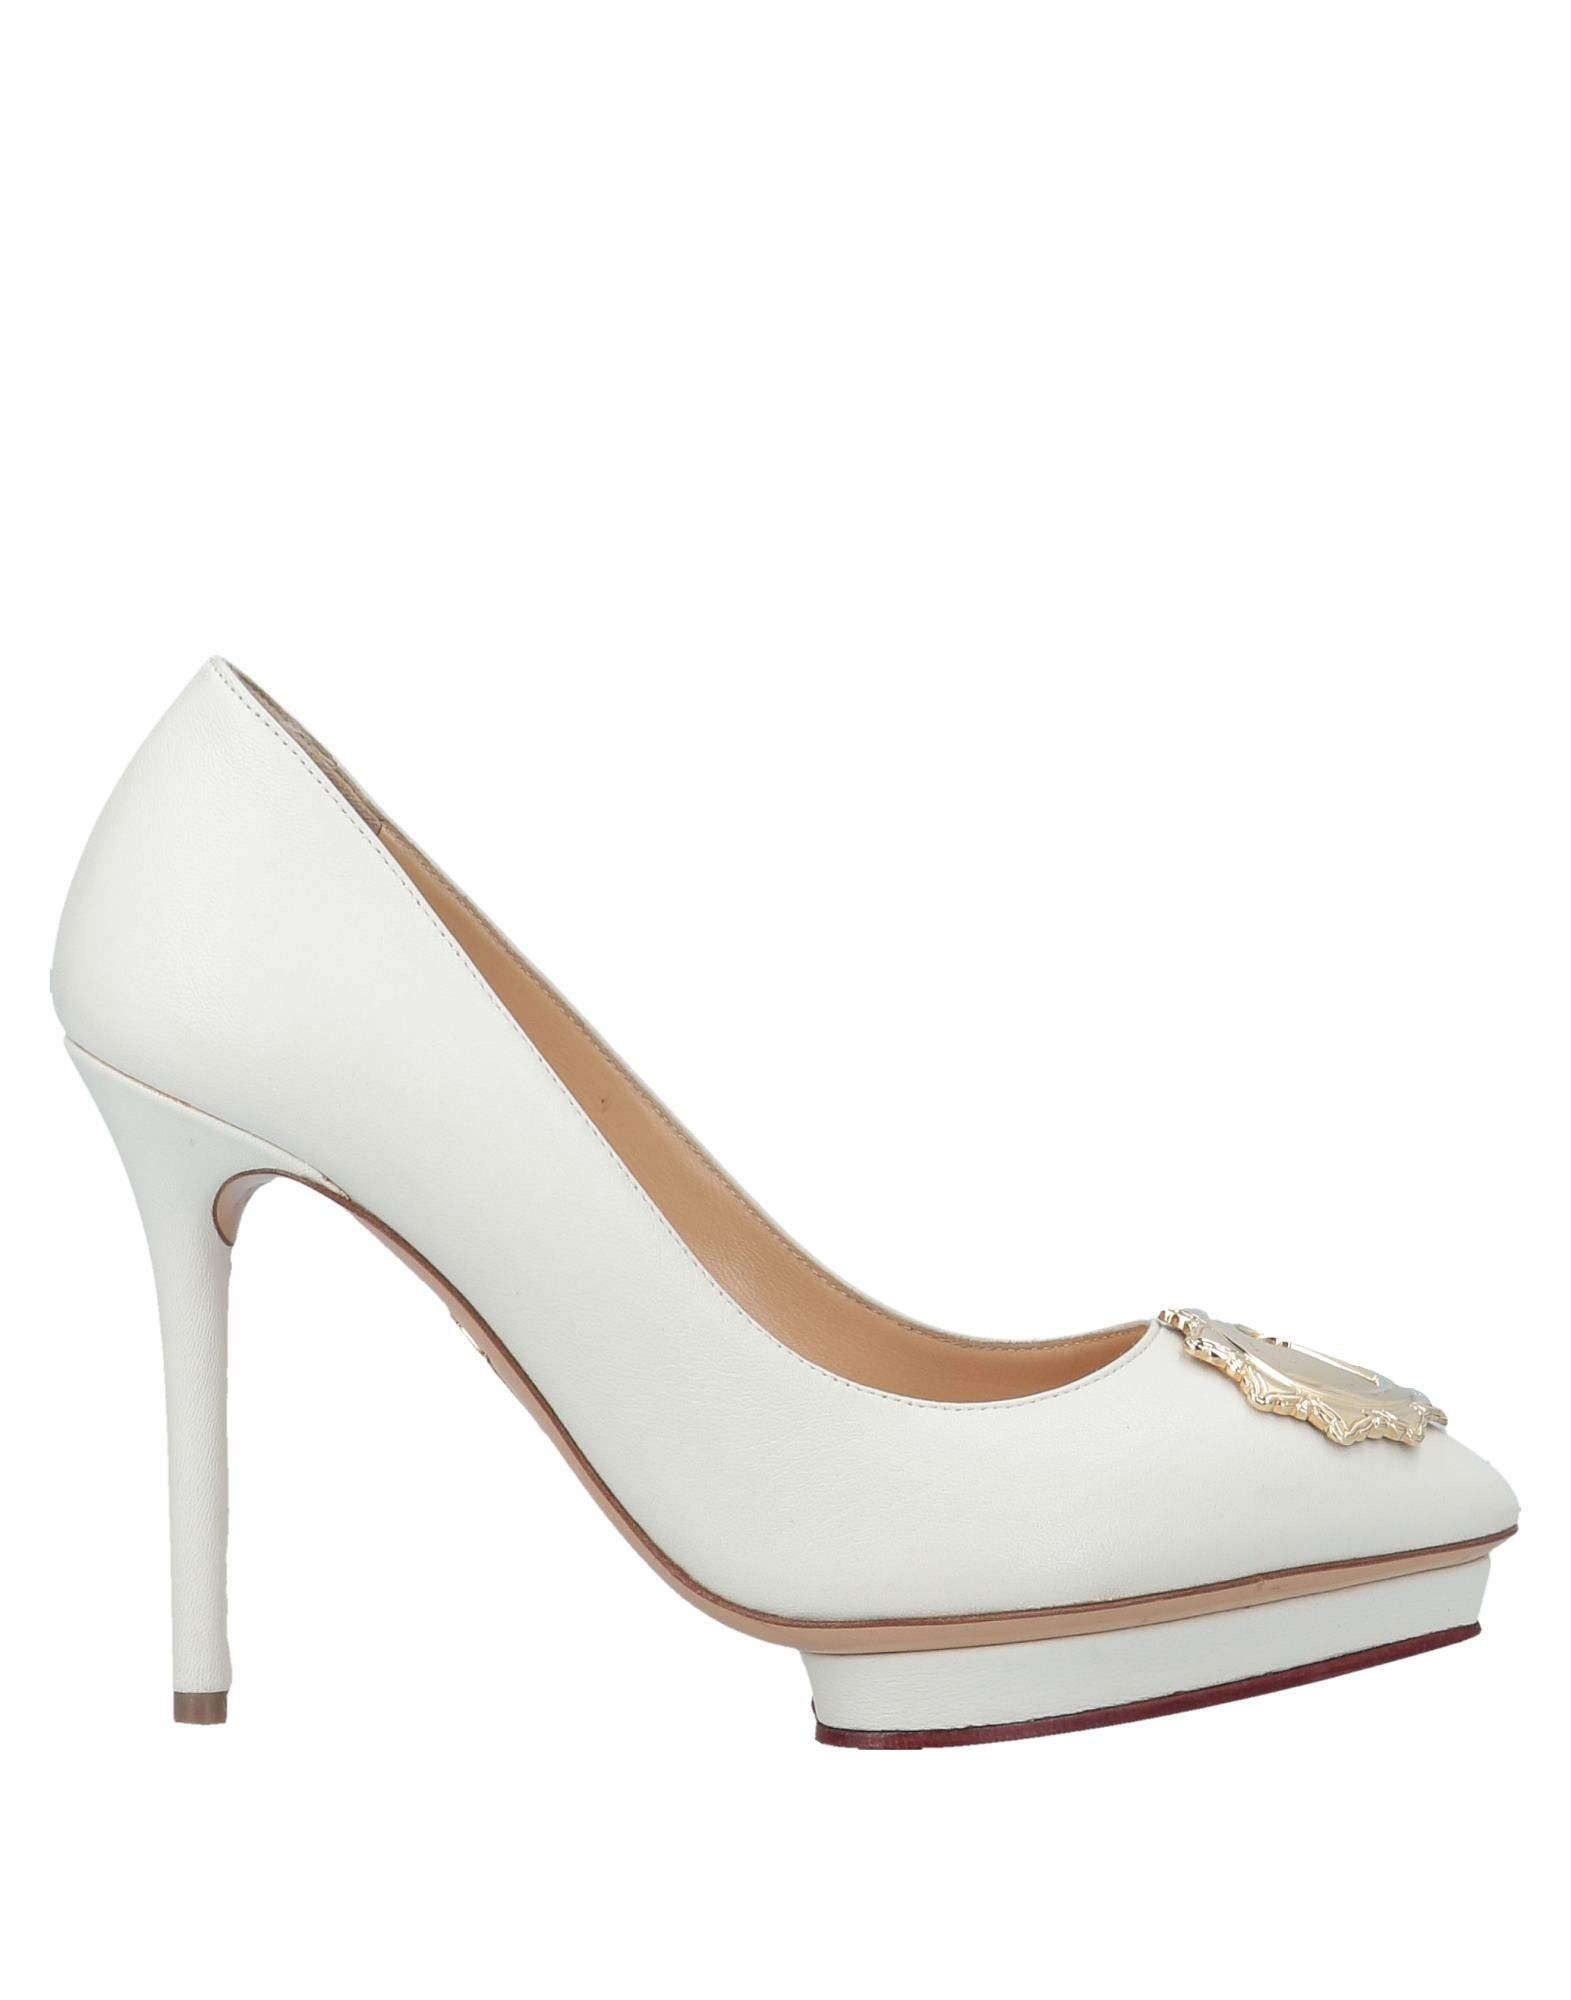 Olympia Charlotte Olympia  Donna - 11595944JQ 875101